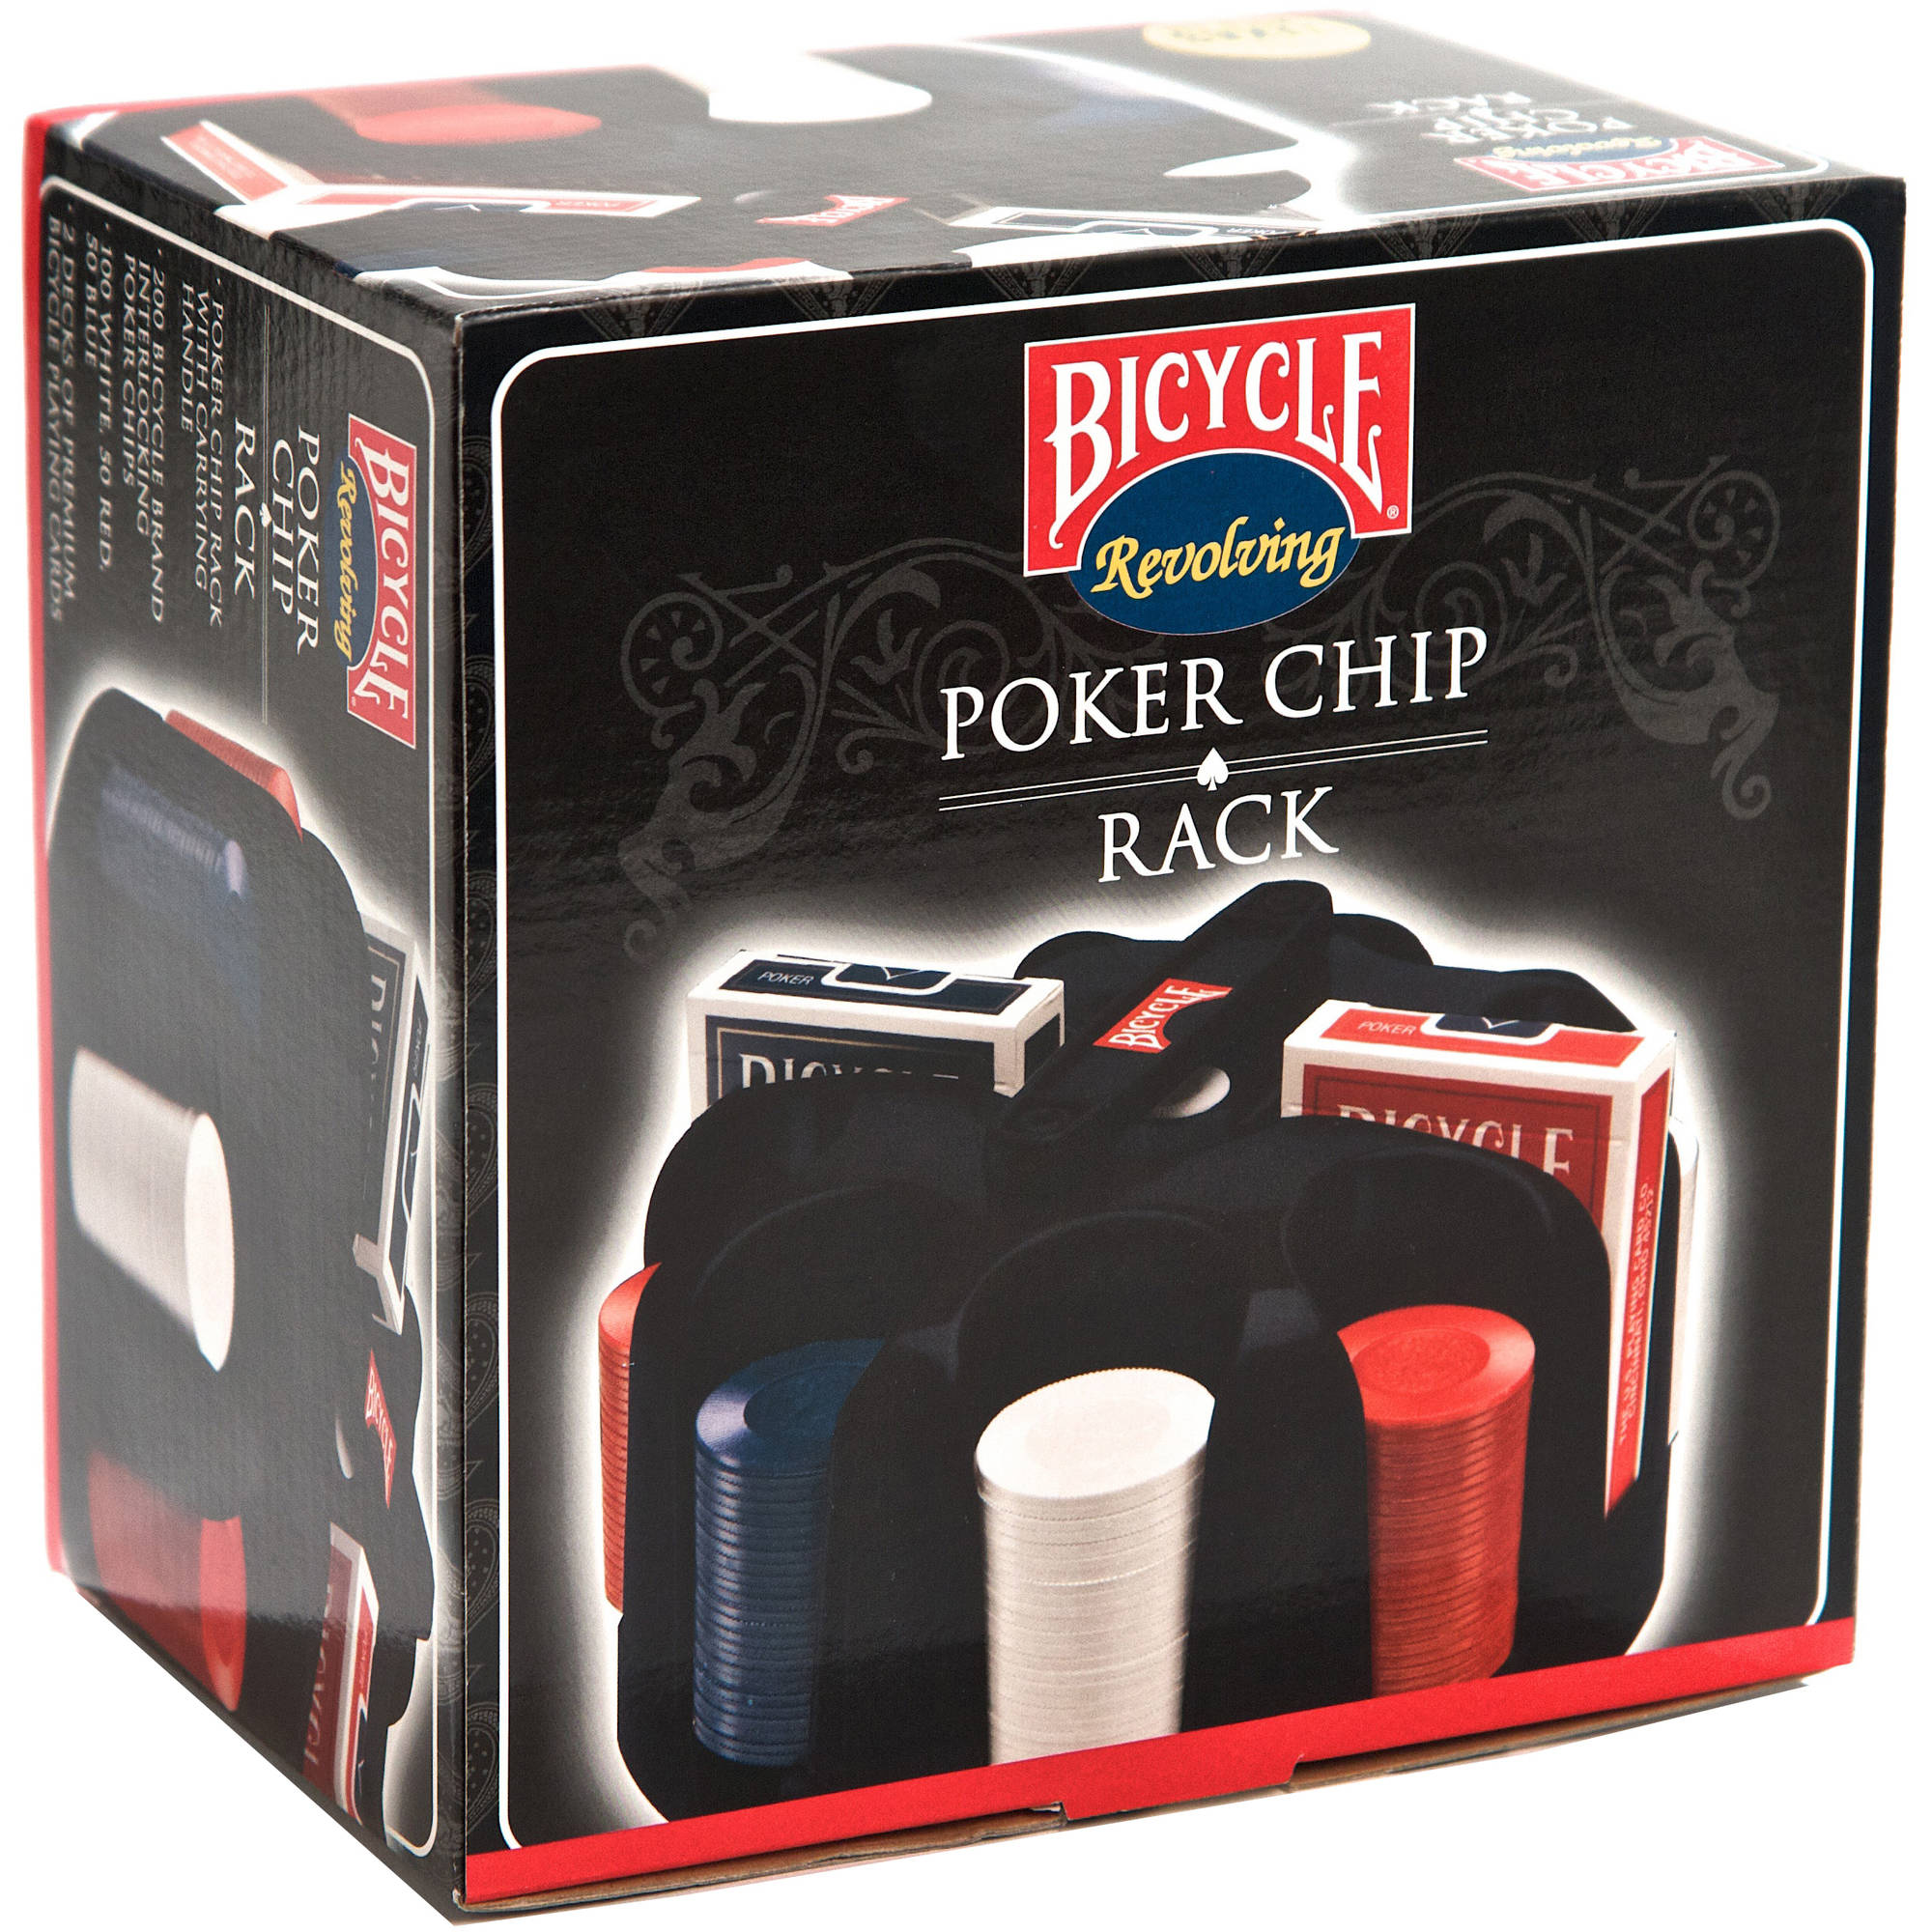 Bicycle Revolving Poker Chip Rack with Chips and Cards